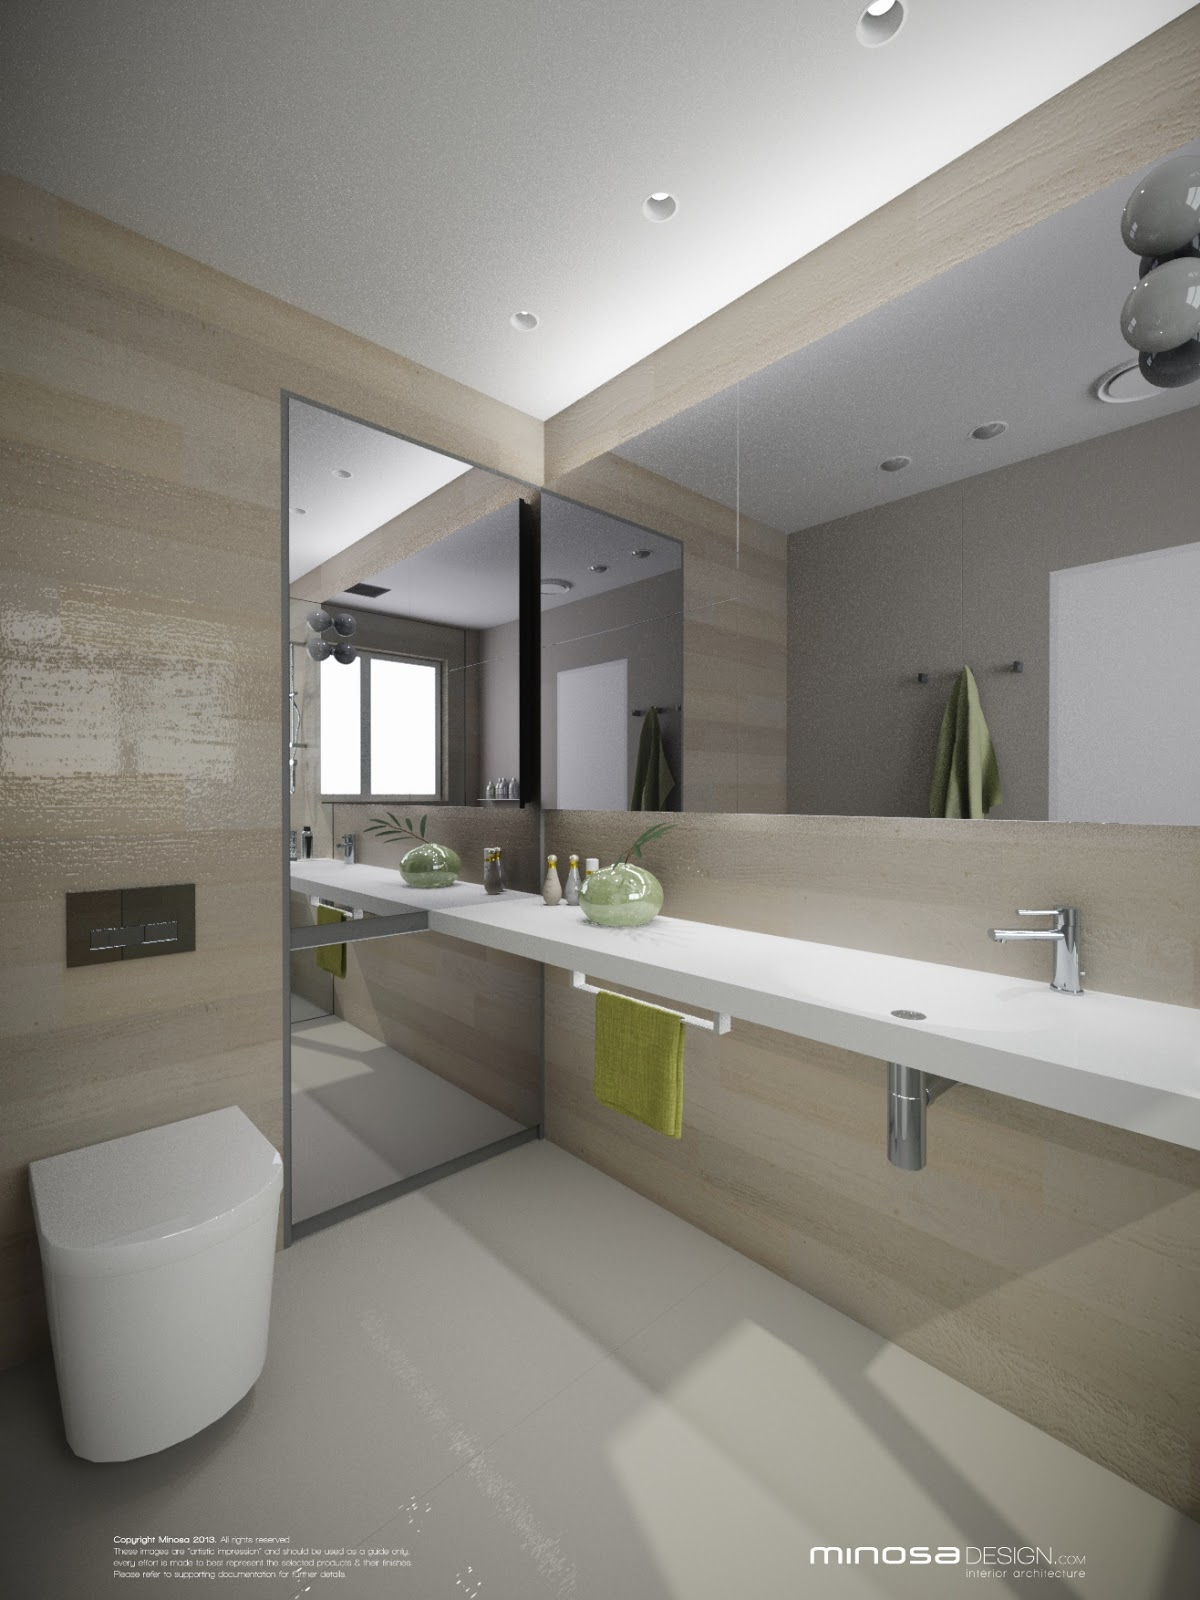 Minosa bringing sexy back the modern bathroom Small ensuites designs